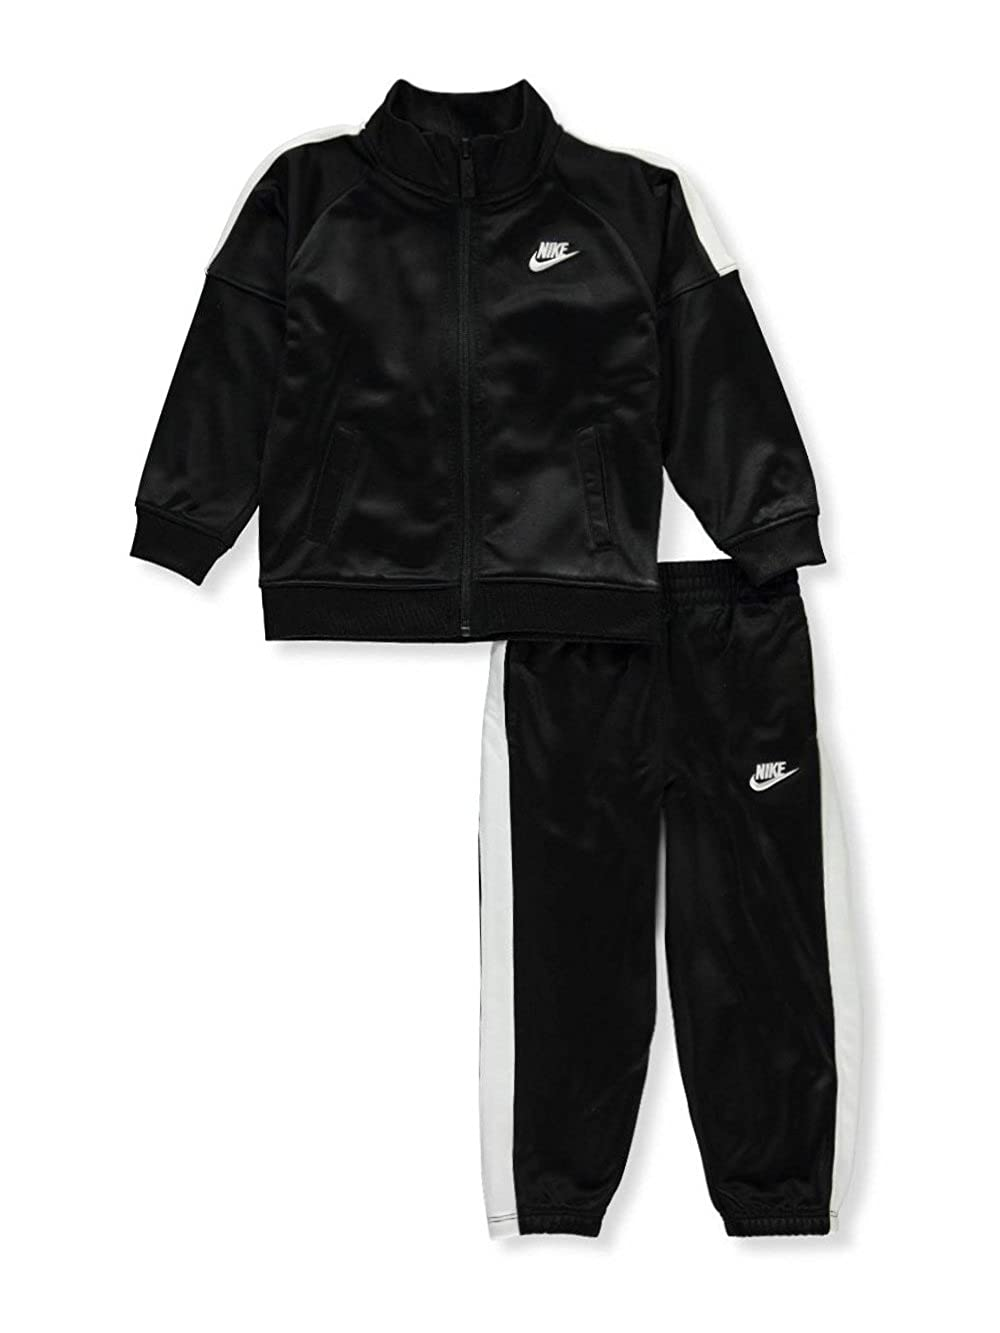 Nike Infant Toddler Baby Track Suit Jacket and Pants Two Piece Set Assorted Colors